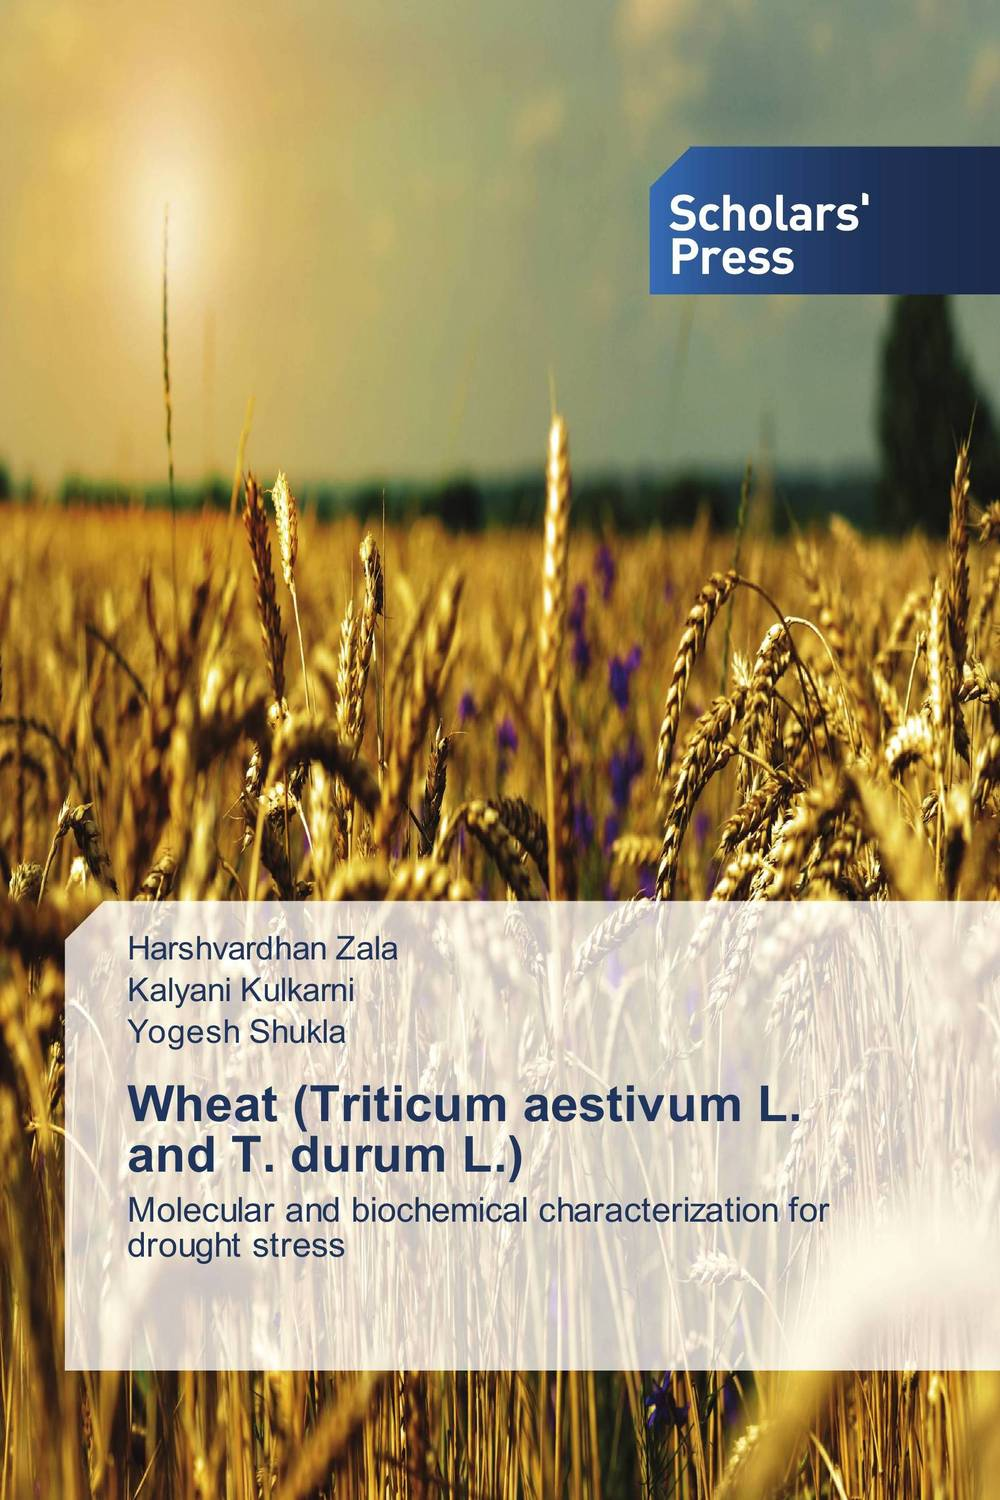 Wheat (Triticum aestivum L. and T. durum L.)